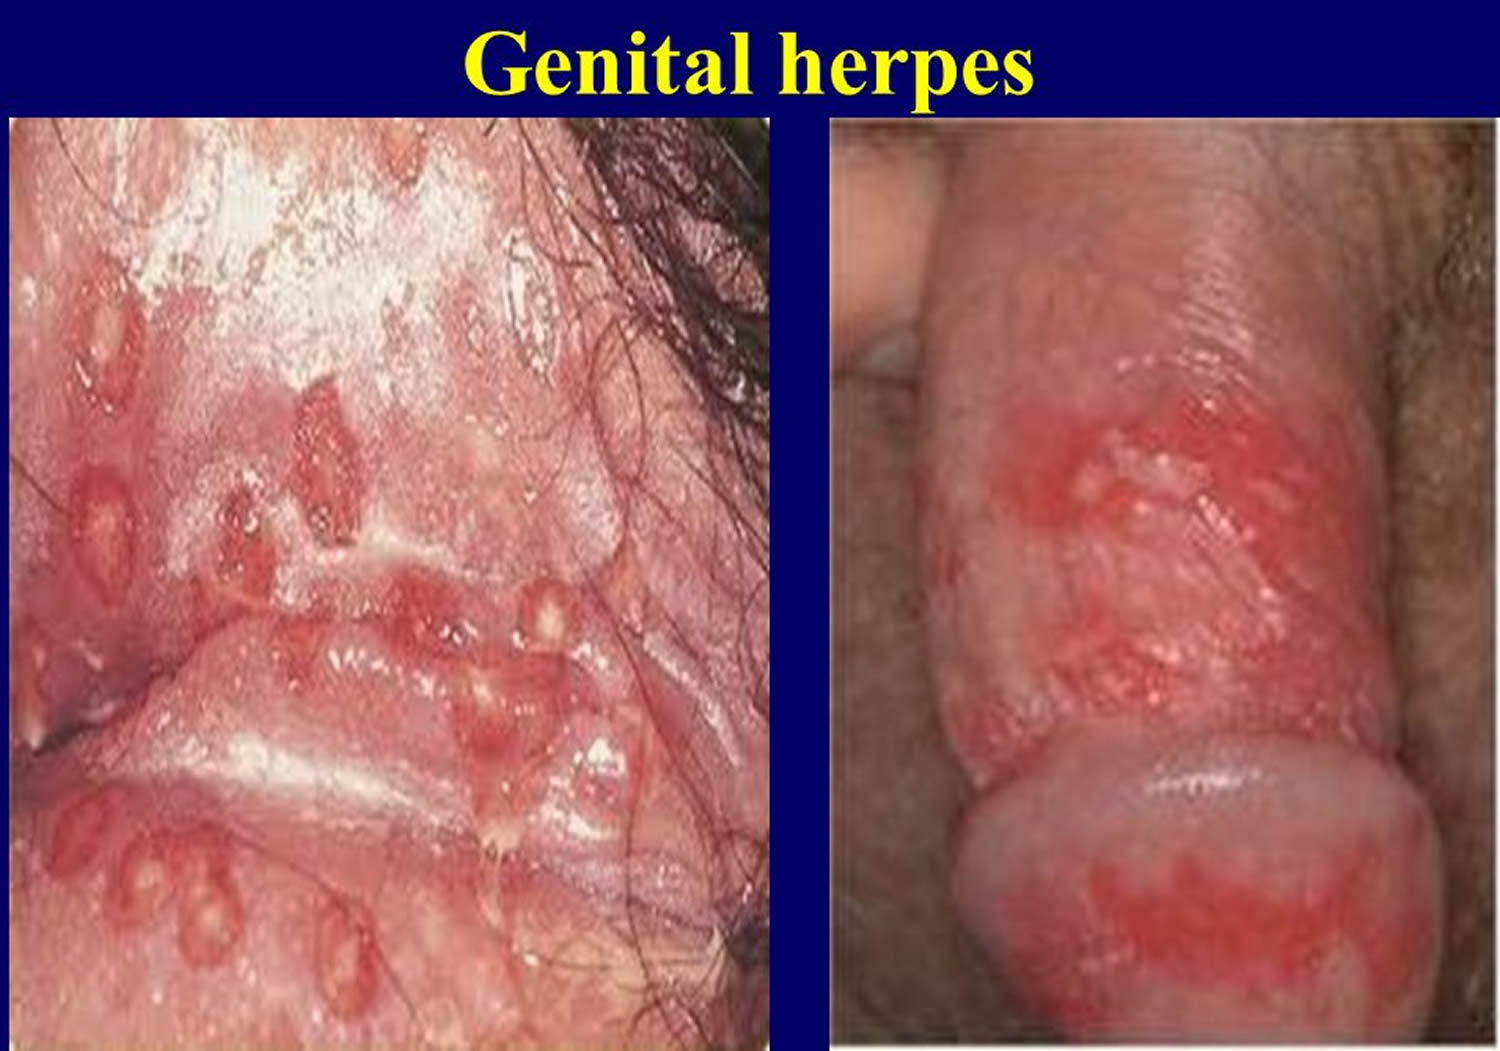 Can you get herpes without having sex